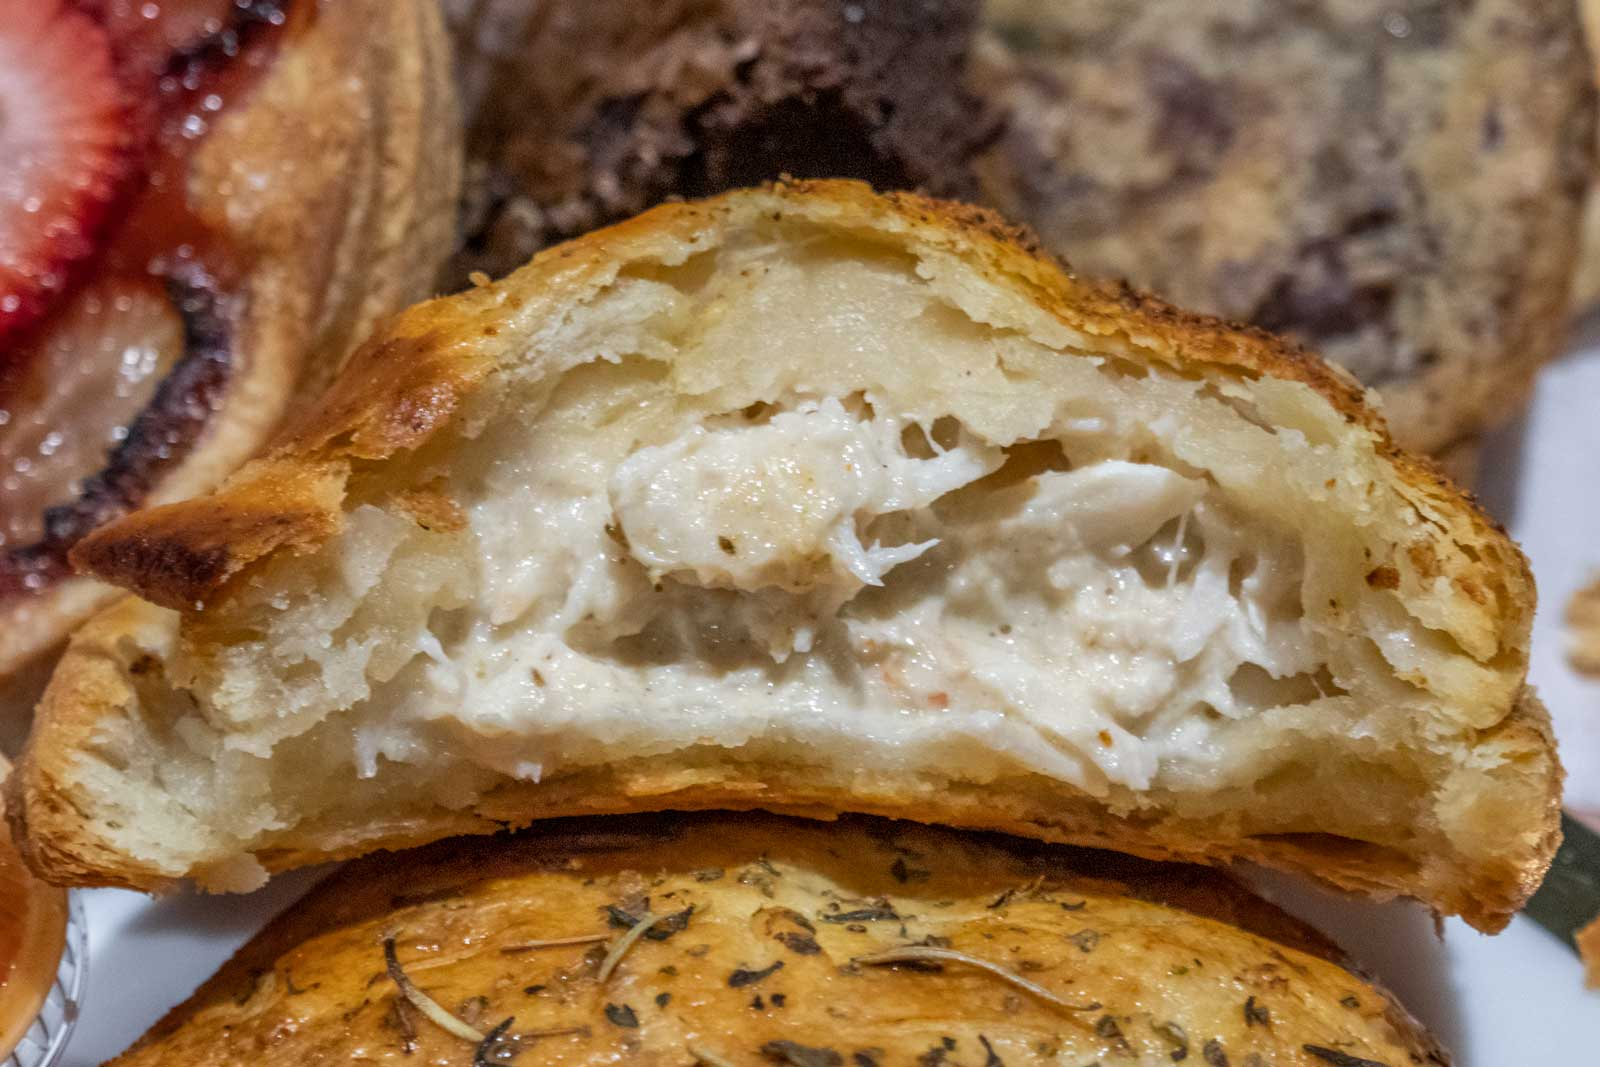 crab pie from Crust by Mack